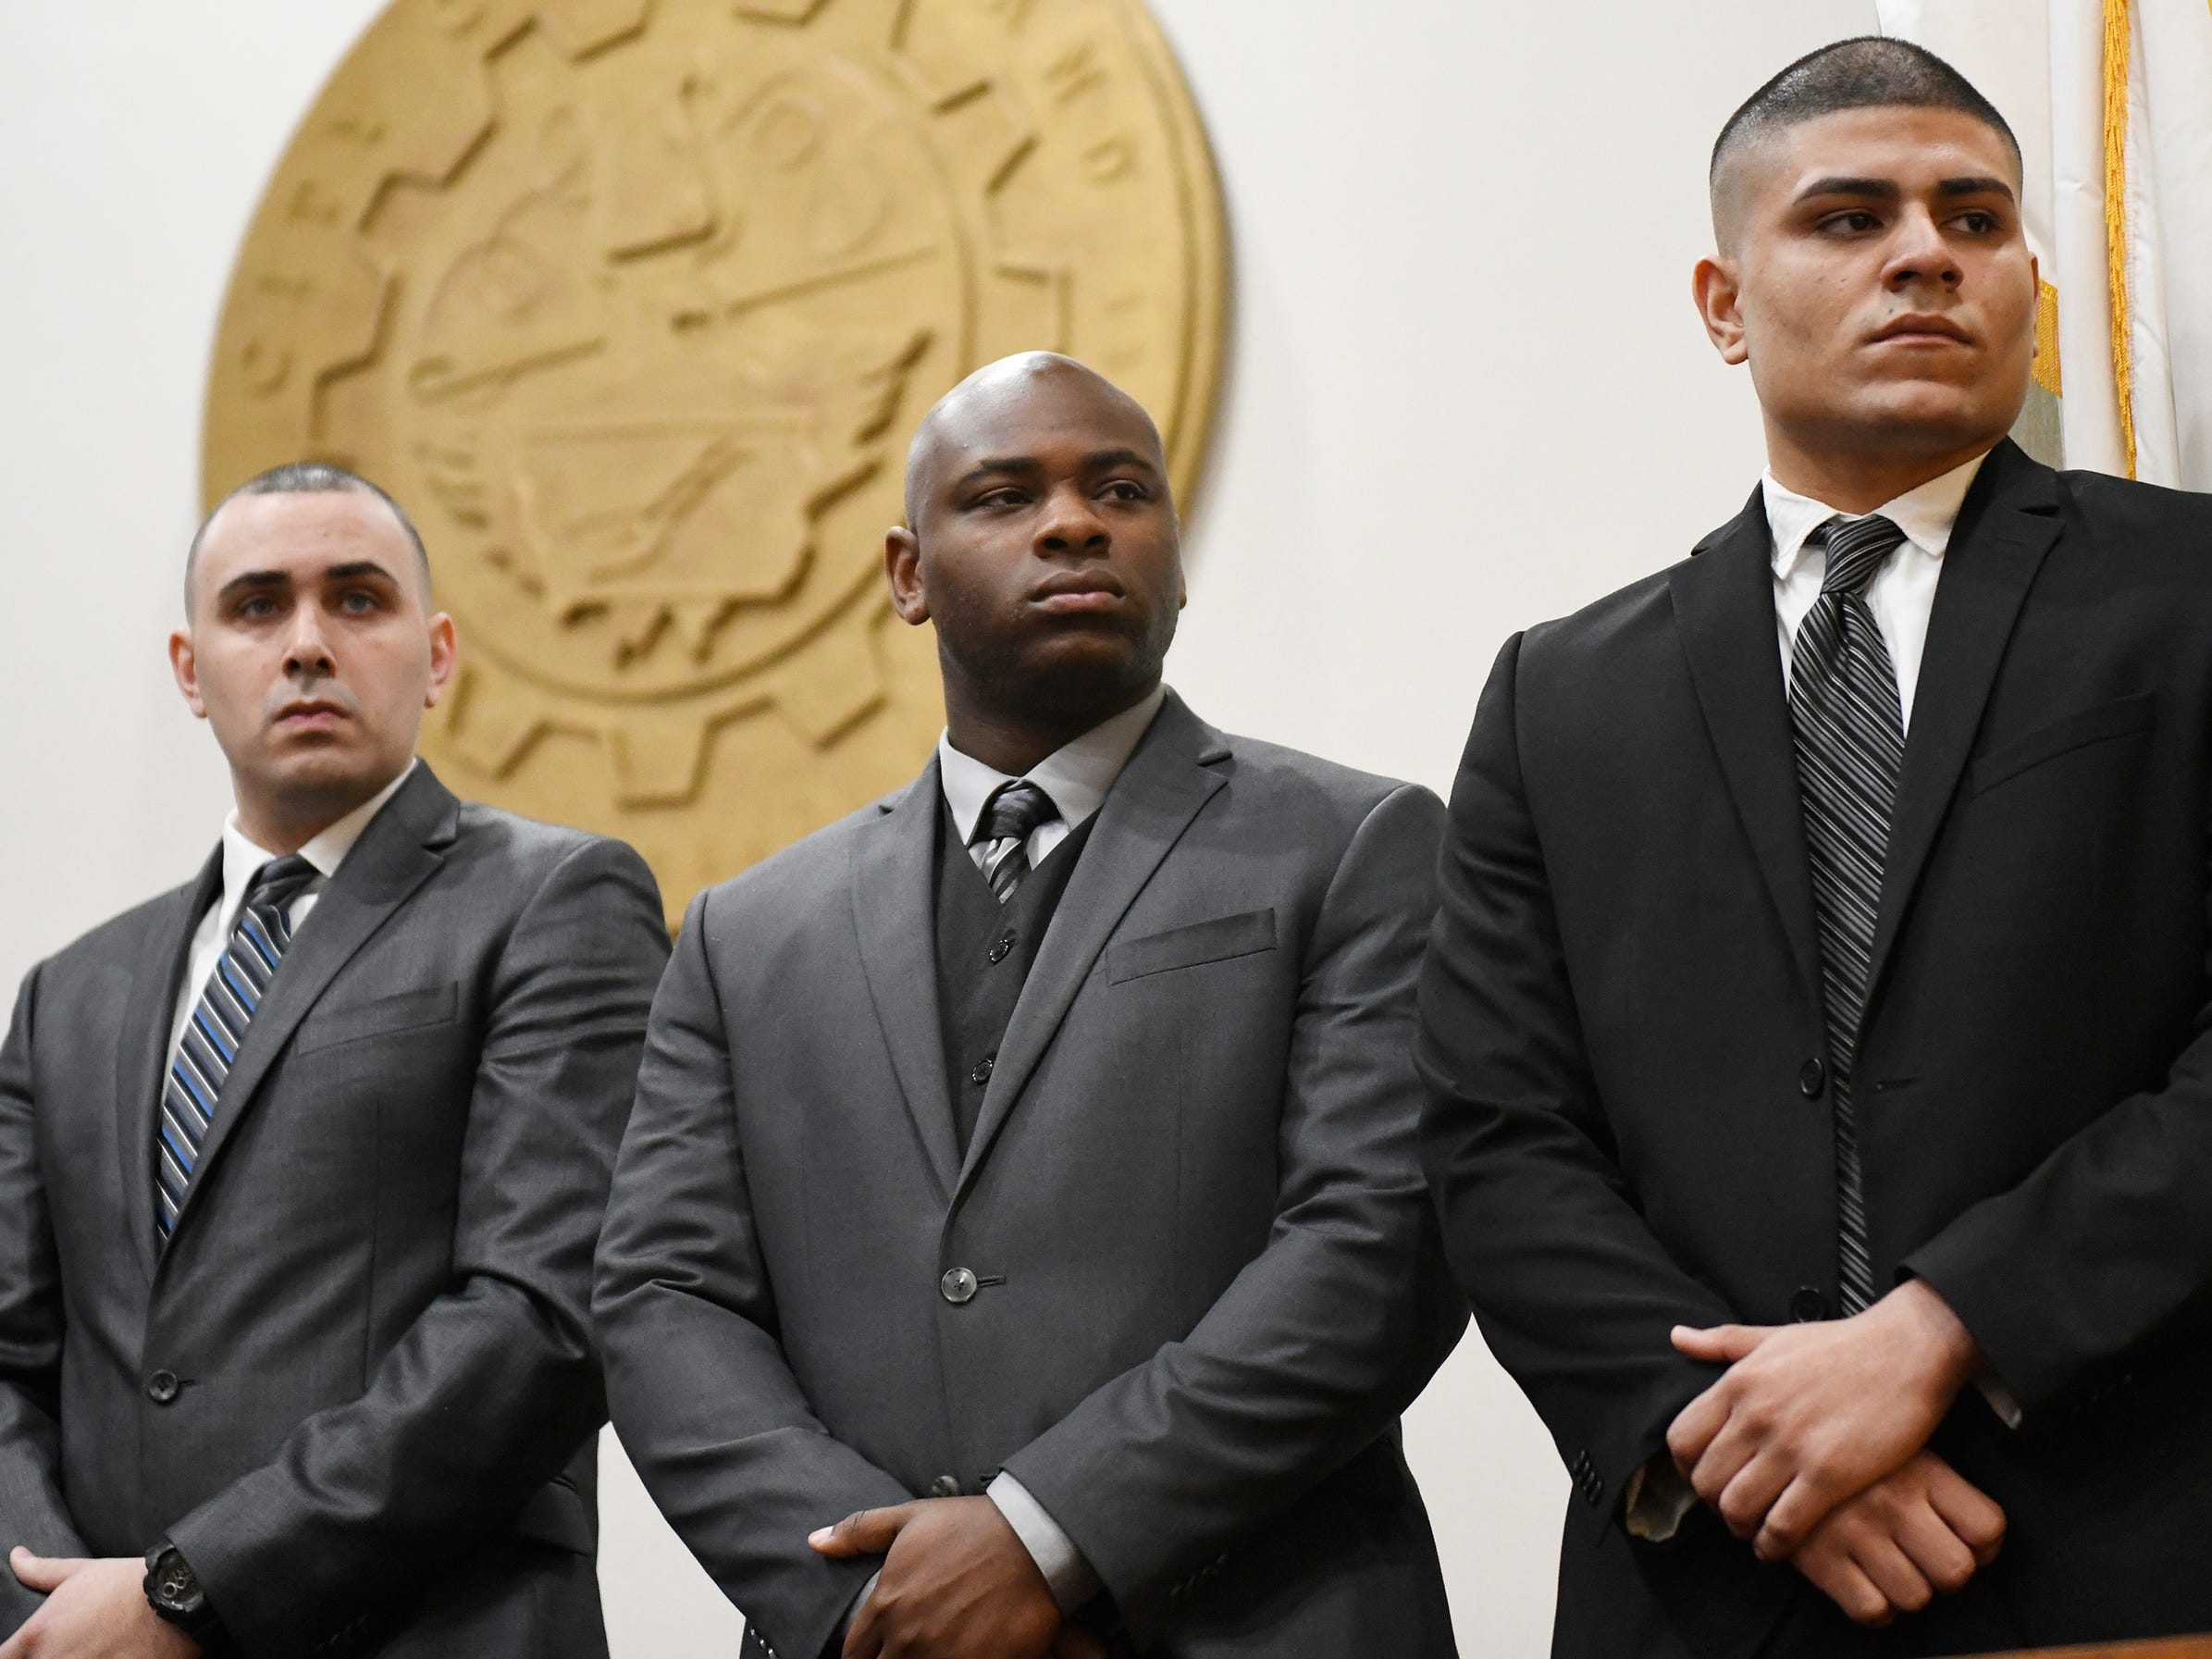 From (l to r) Alfredo J. Rodriguez, Teyson M. Mayes and Isaiah Rosa were among eight police officers sworn in by Mayor Anthony Fanucci at Vineland City Hall on Wednesday, Feb.27, 2019.